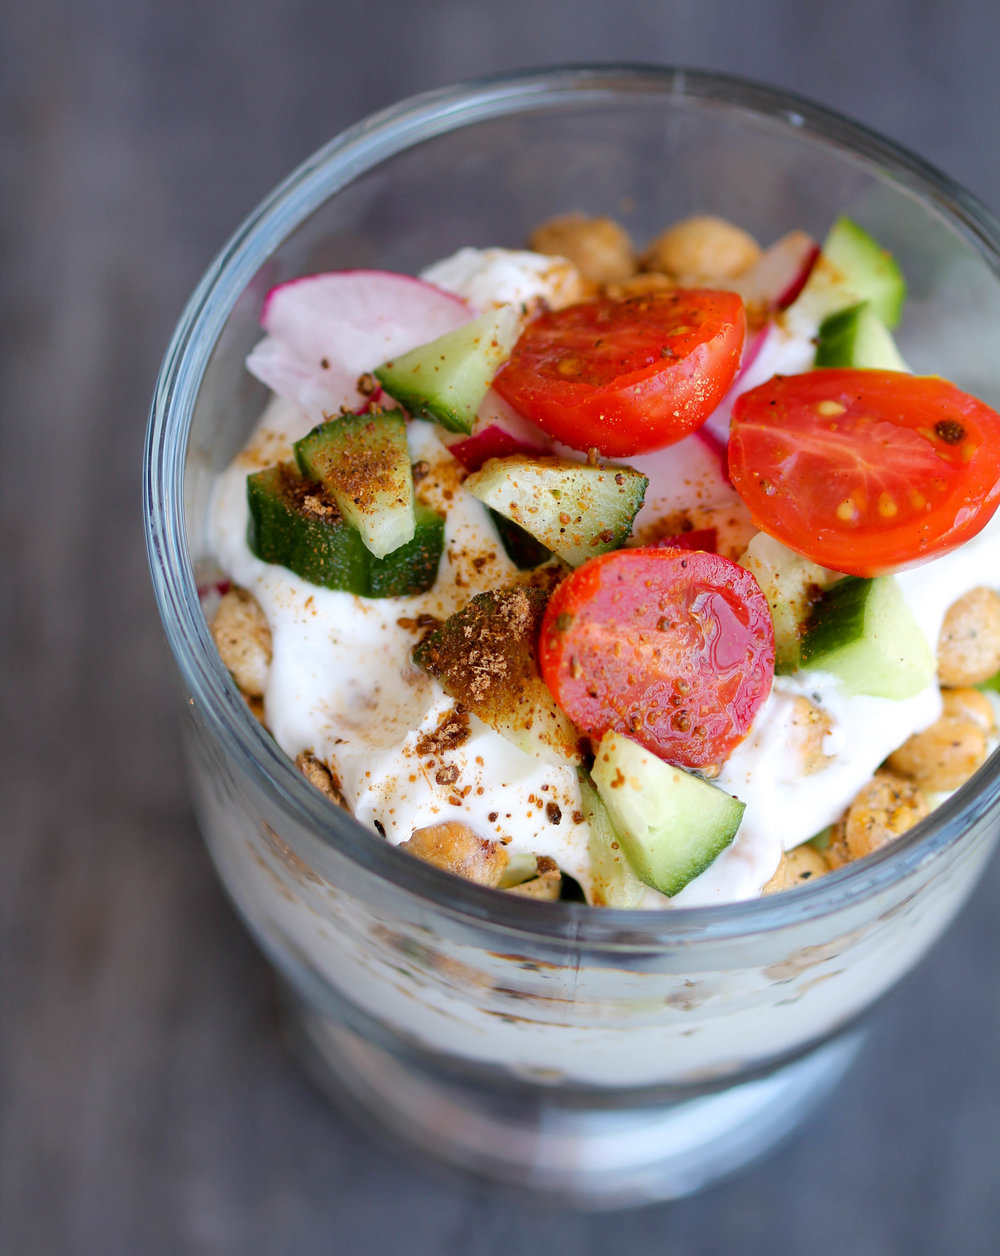 Savory Yogurt Parfait is a great option for quick, savory breakfast or an afternoon snack! It is packed with protein and other nutrients and is naturally gluten-free!